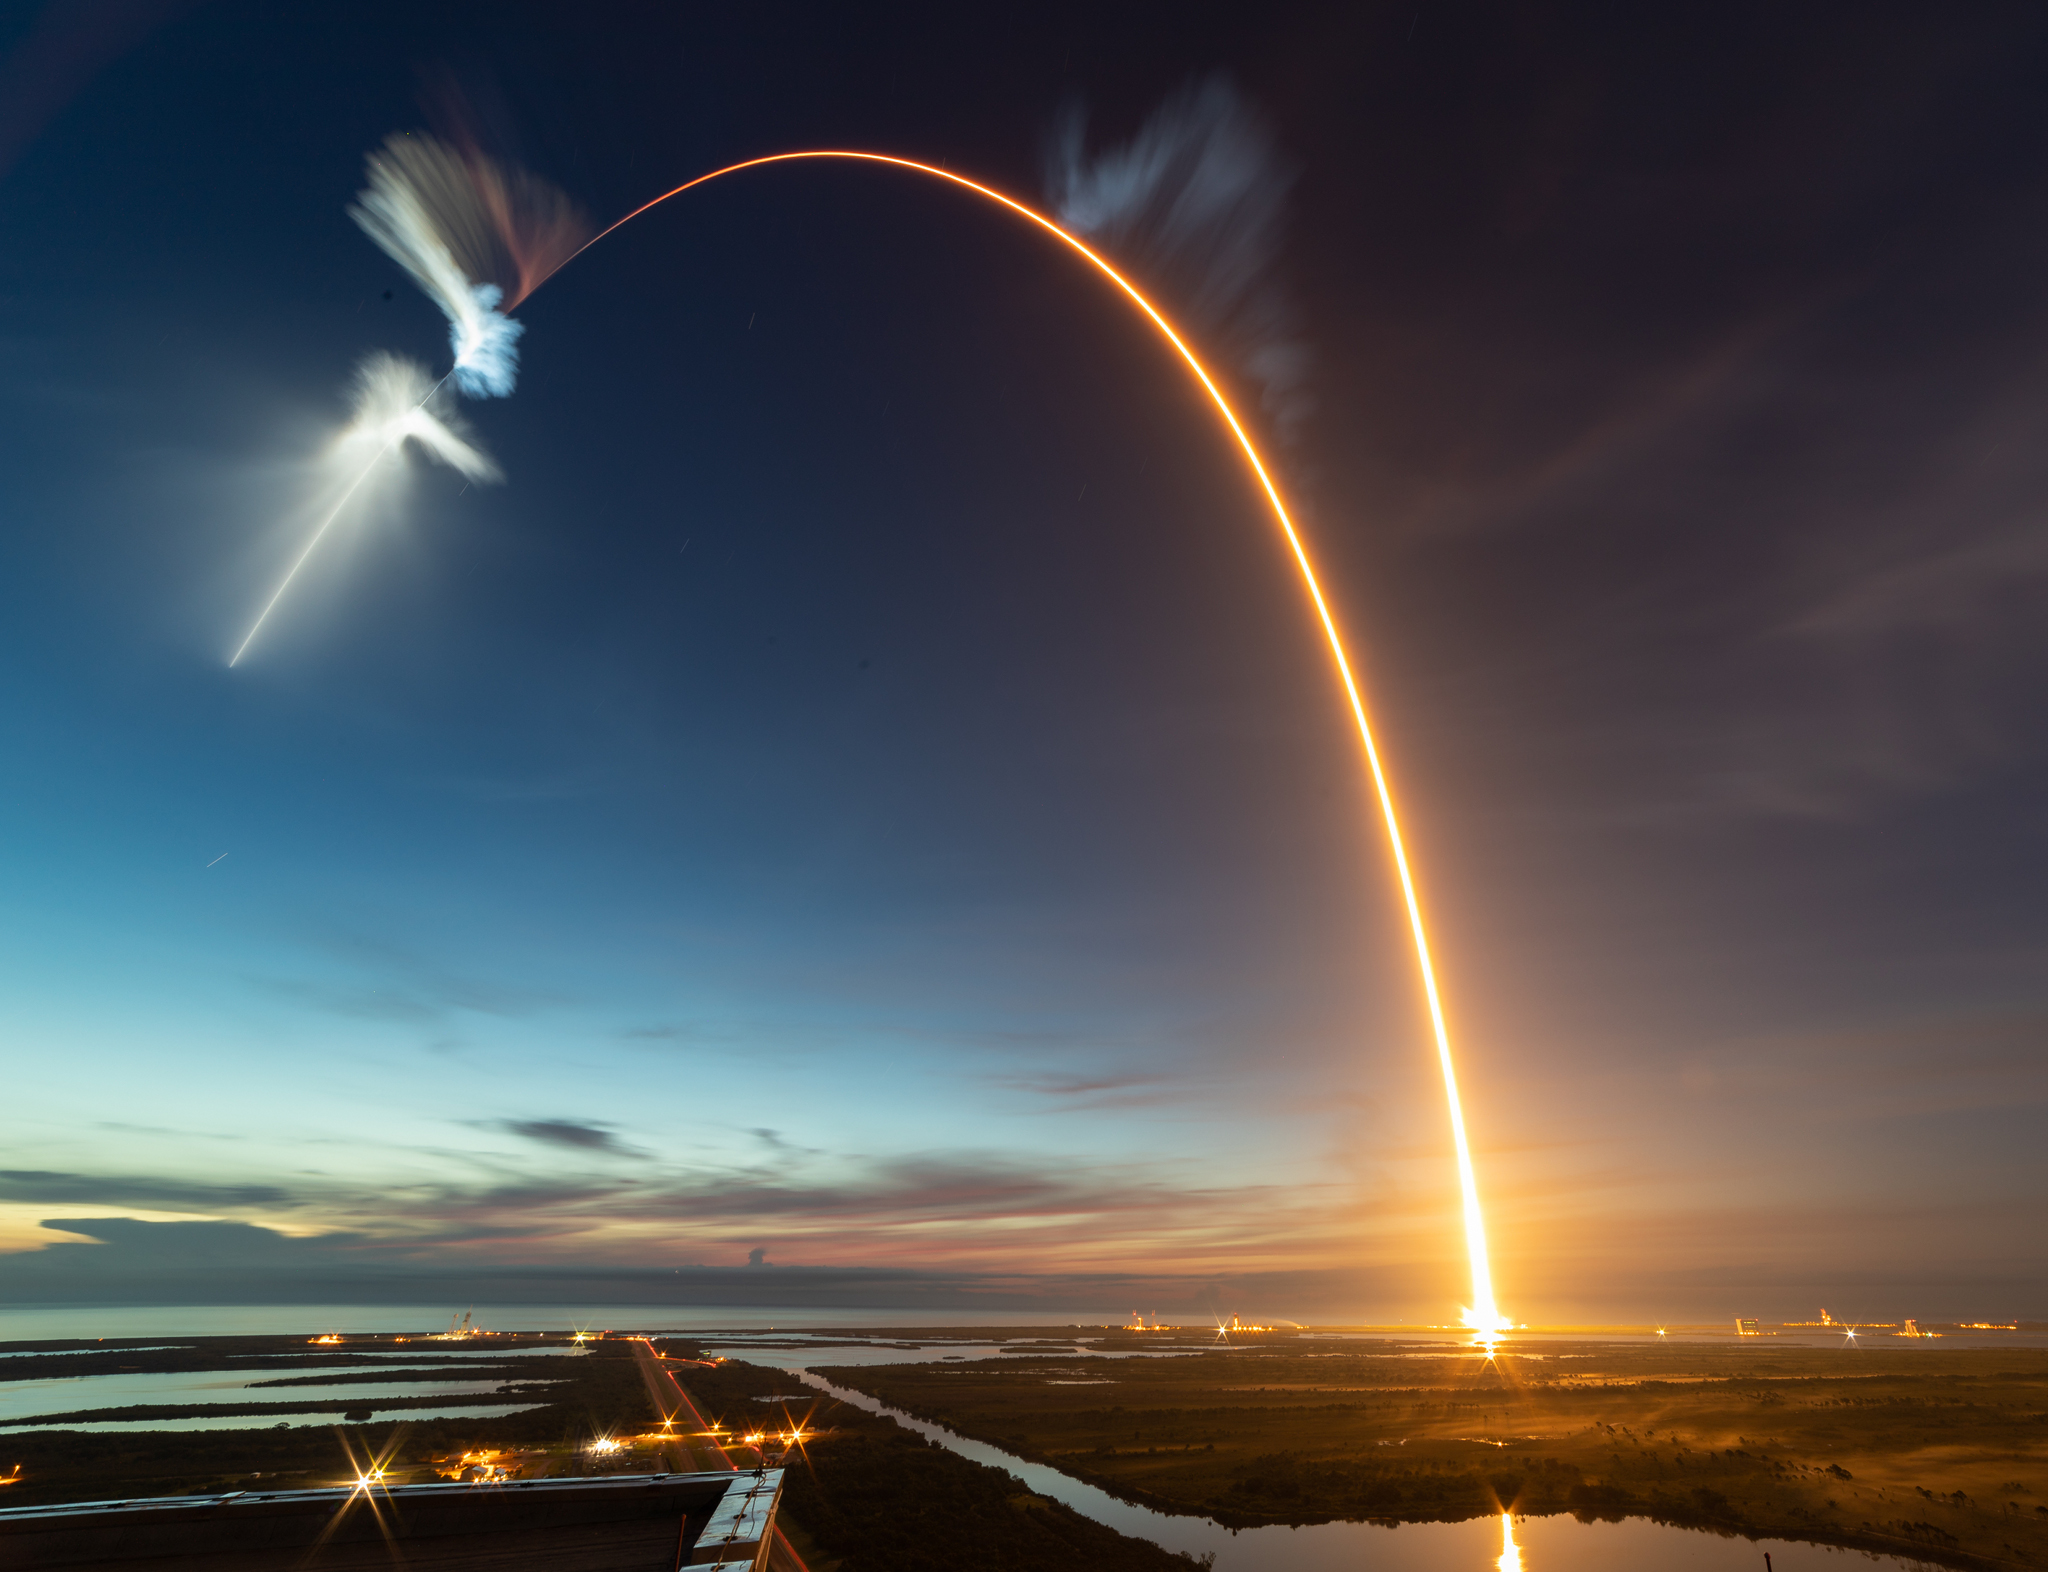 CRS-15 by SpaceX